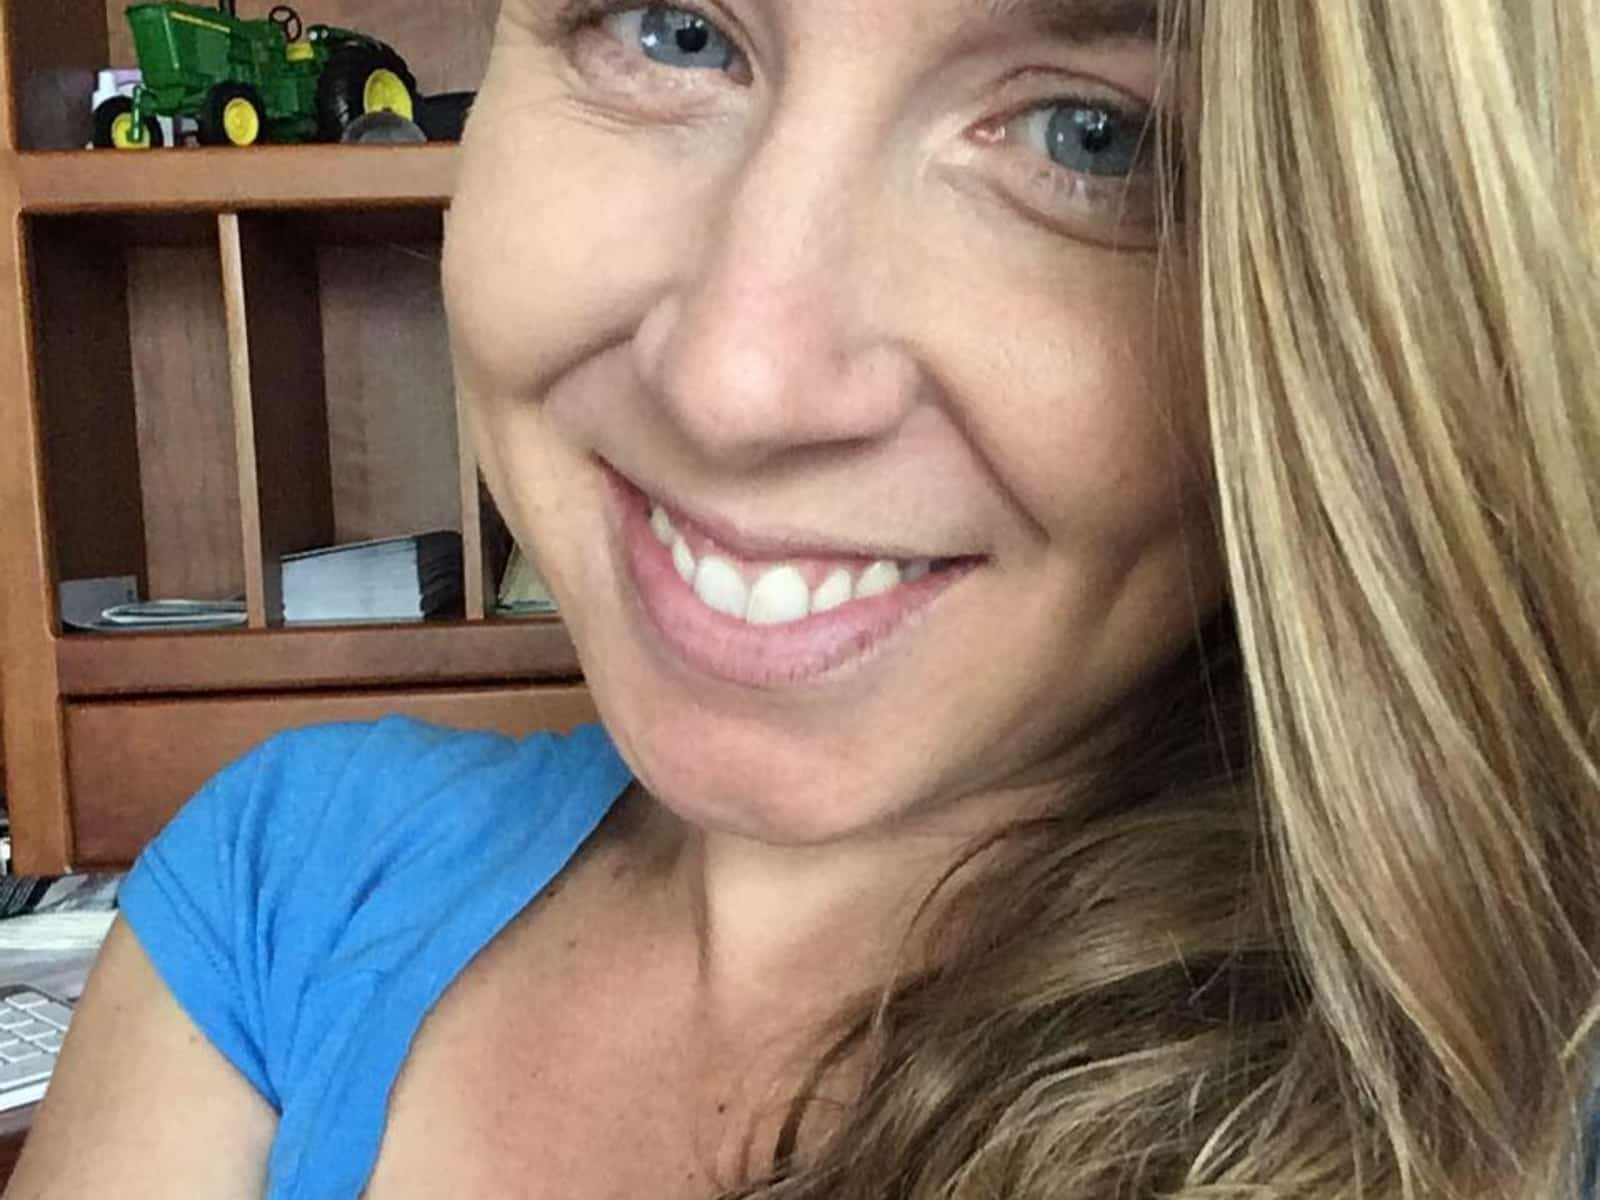 Camille from Denver, Colorado, United States